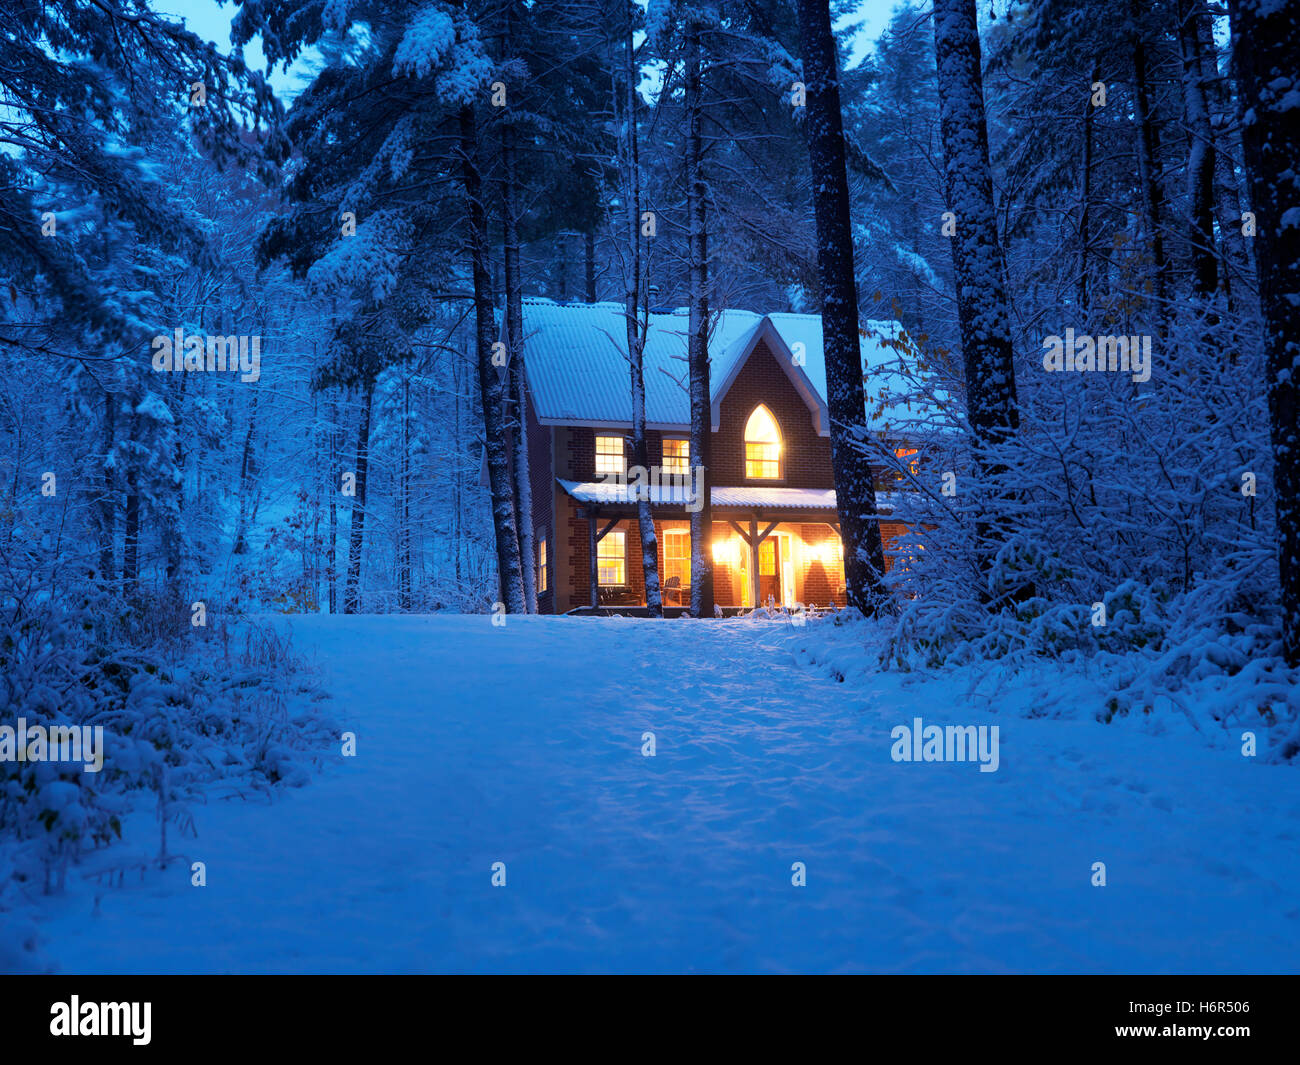 Brick country house or cottage with lights on in a snowy winter evening twilight nature scenery in Muskoka, Ontario, - Stock Image